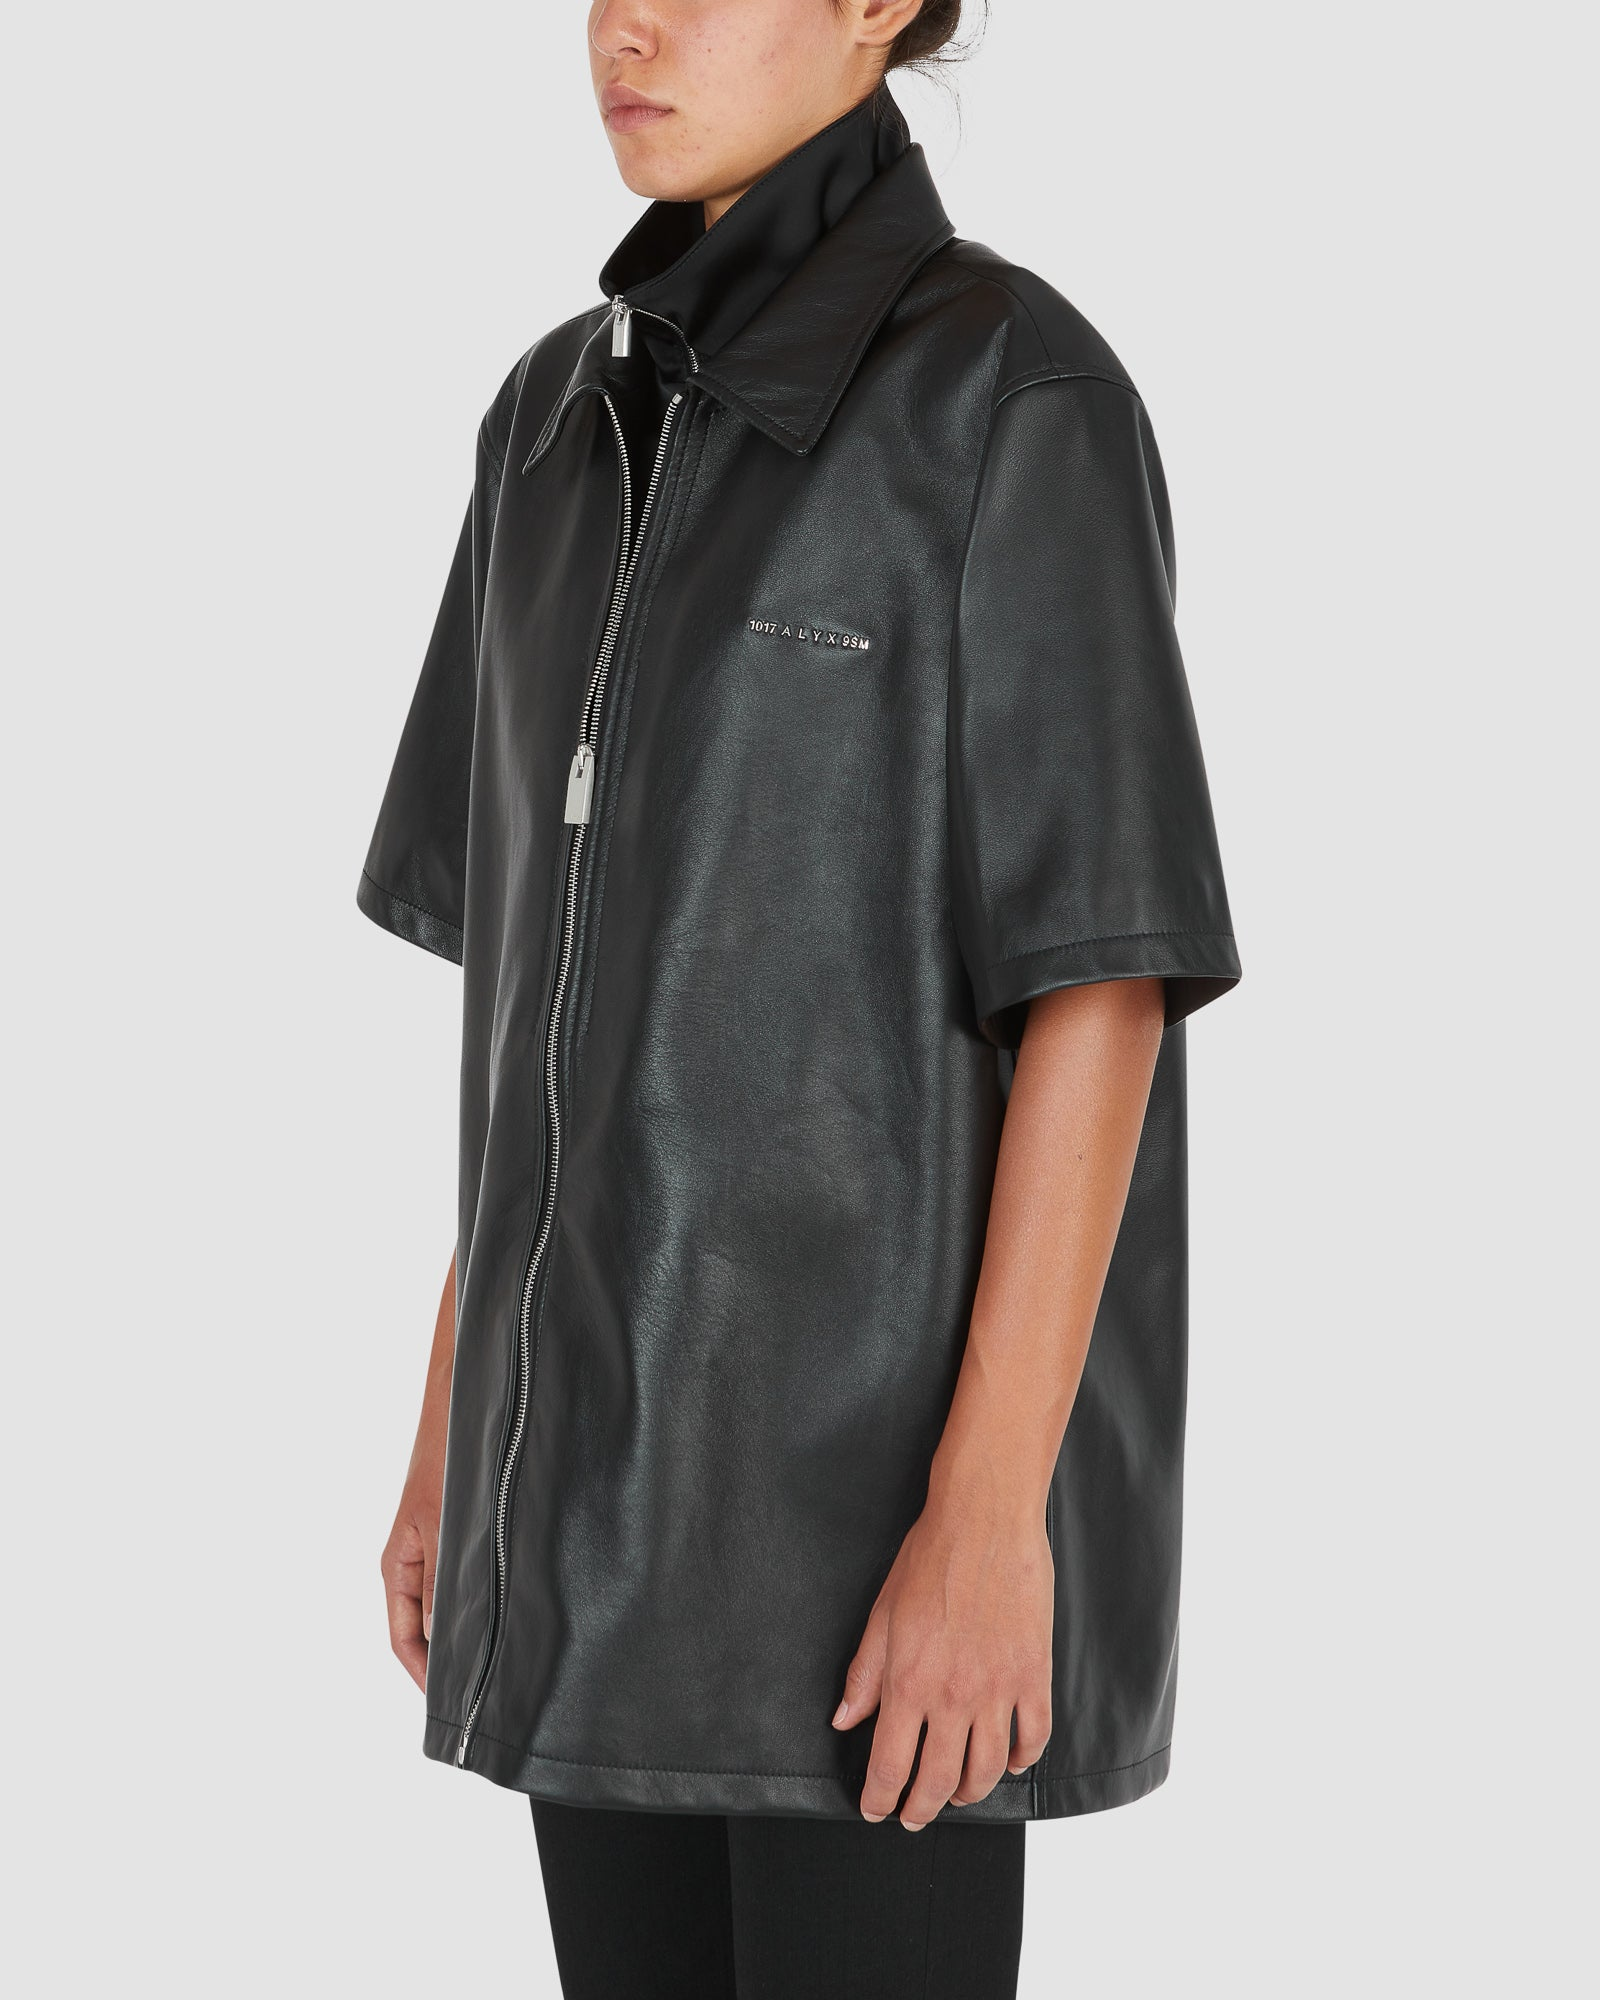 LEATHER DOUBLE COLLAR S/S SHIRT